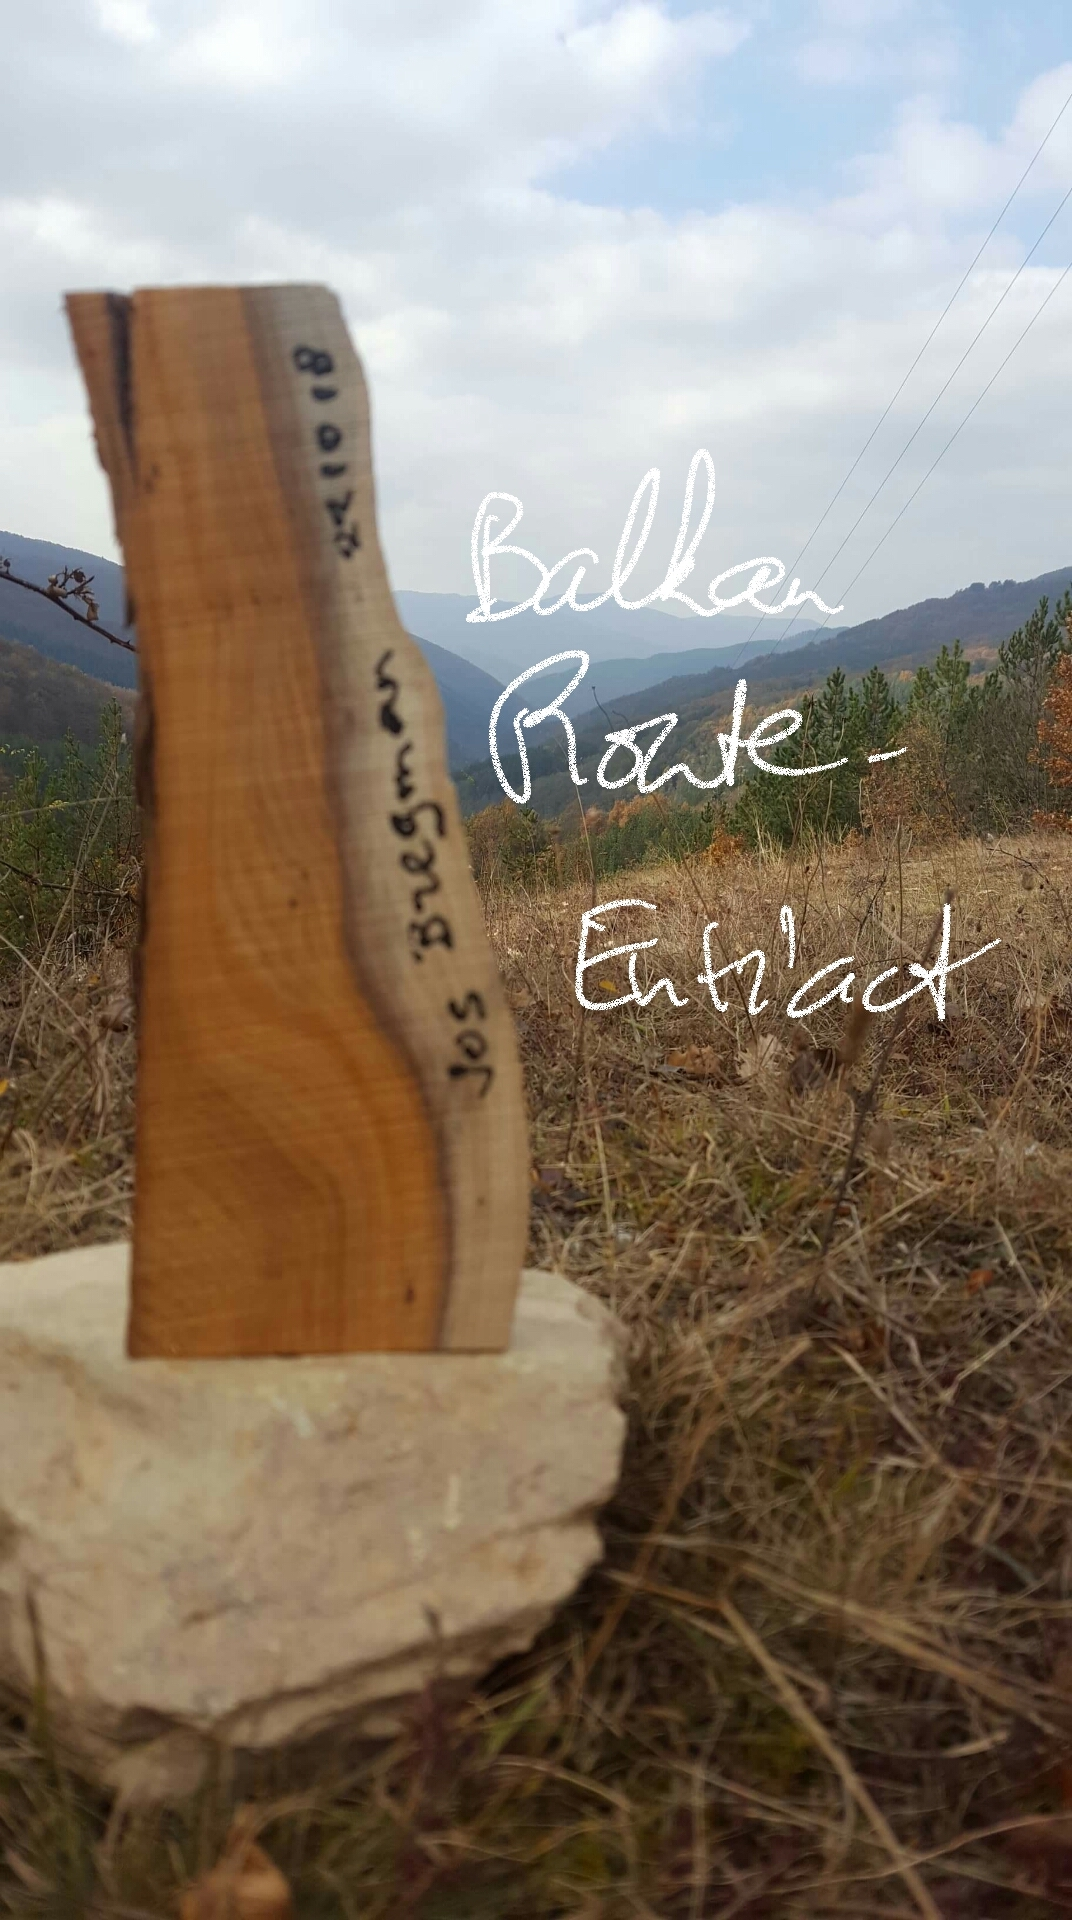 Balkan Route – Entr'act